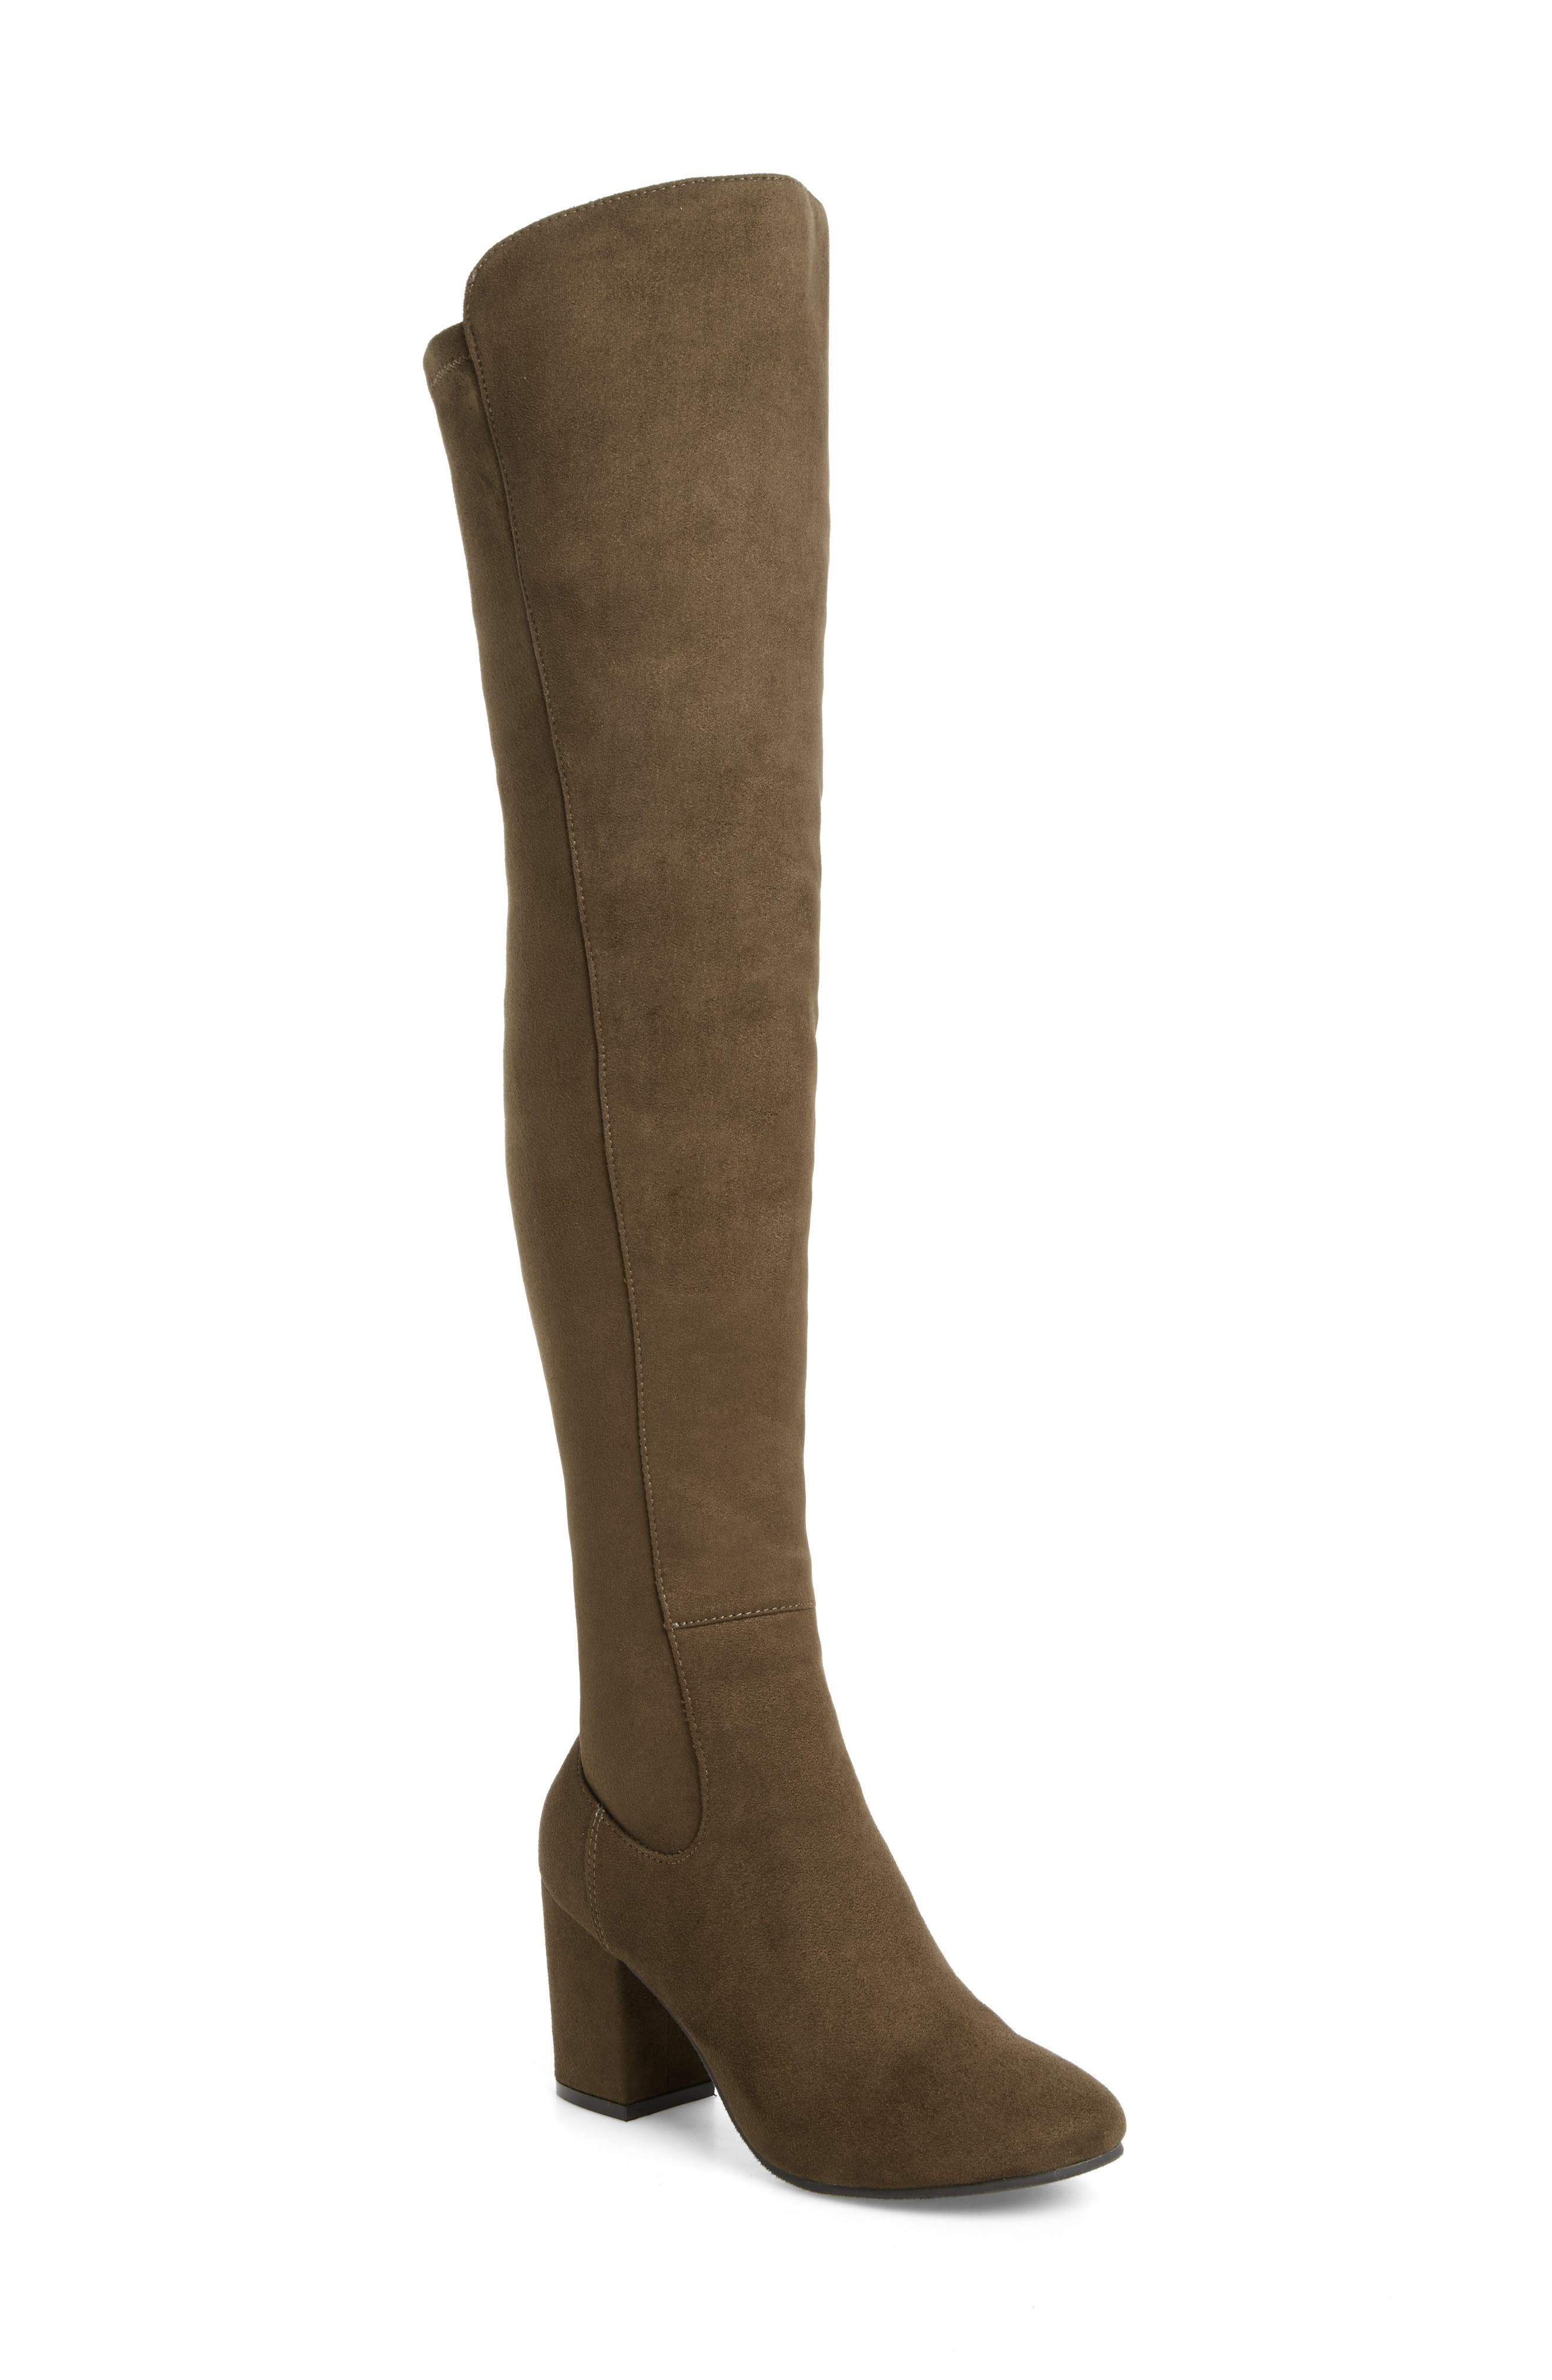 Treasure & Bond Lynx Stretch Over the Knee Boot (Women)